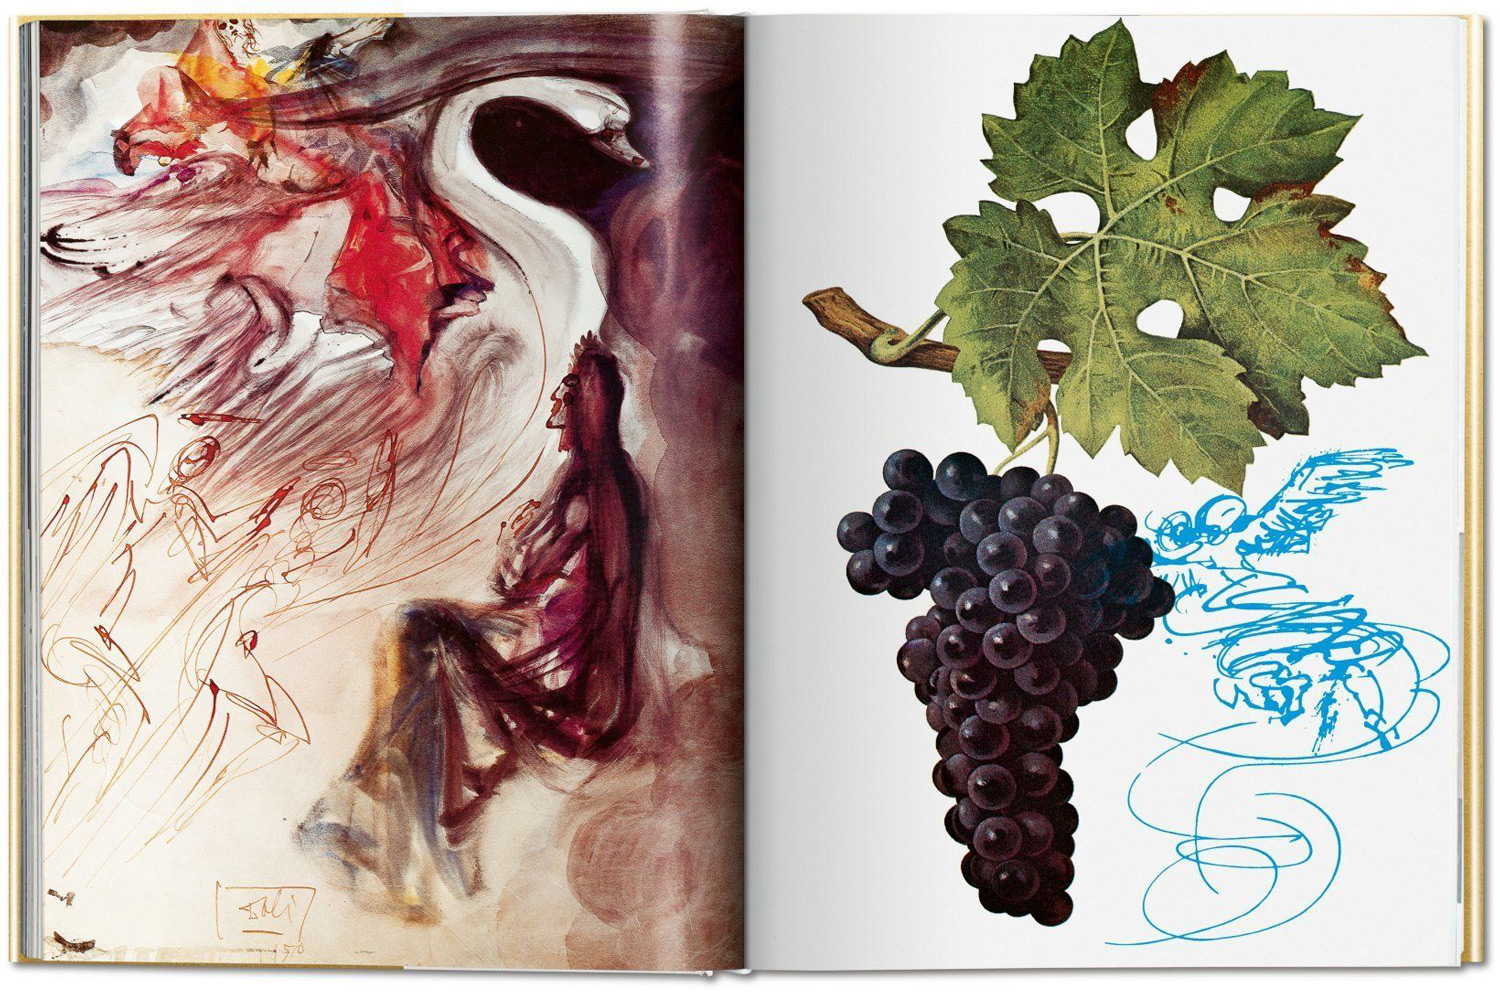 The Wines of Gala: Salvador Dali's Surrealist Wine Guide Republished for the First Time in 40 Years